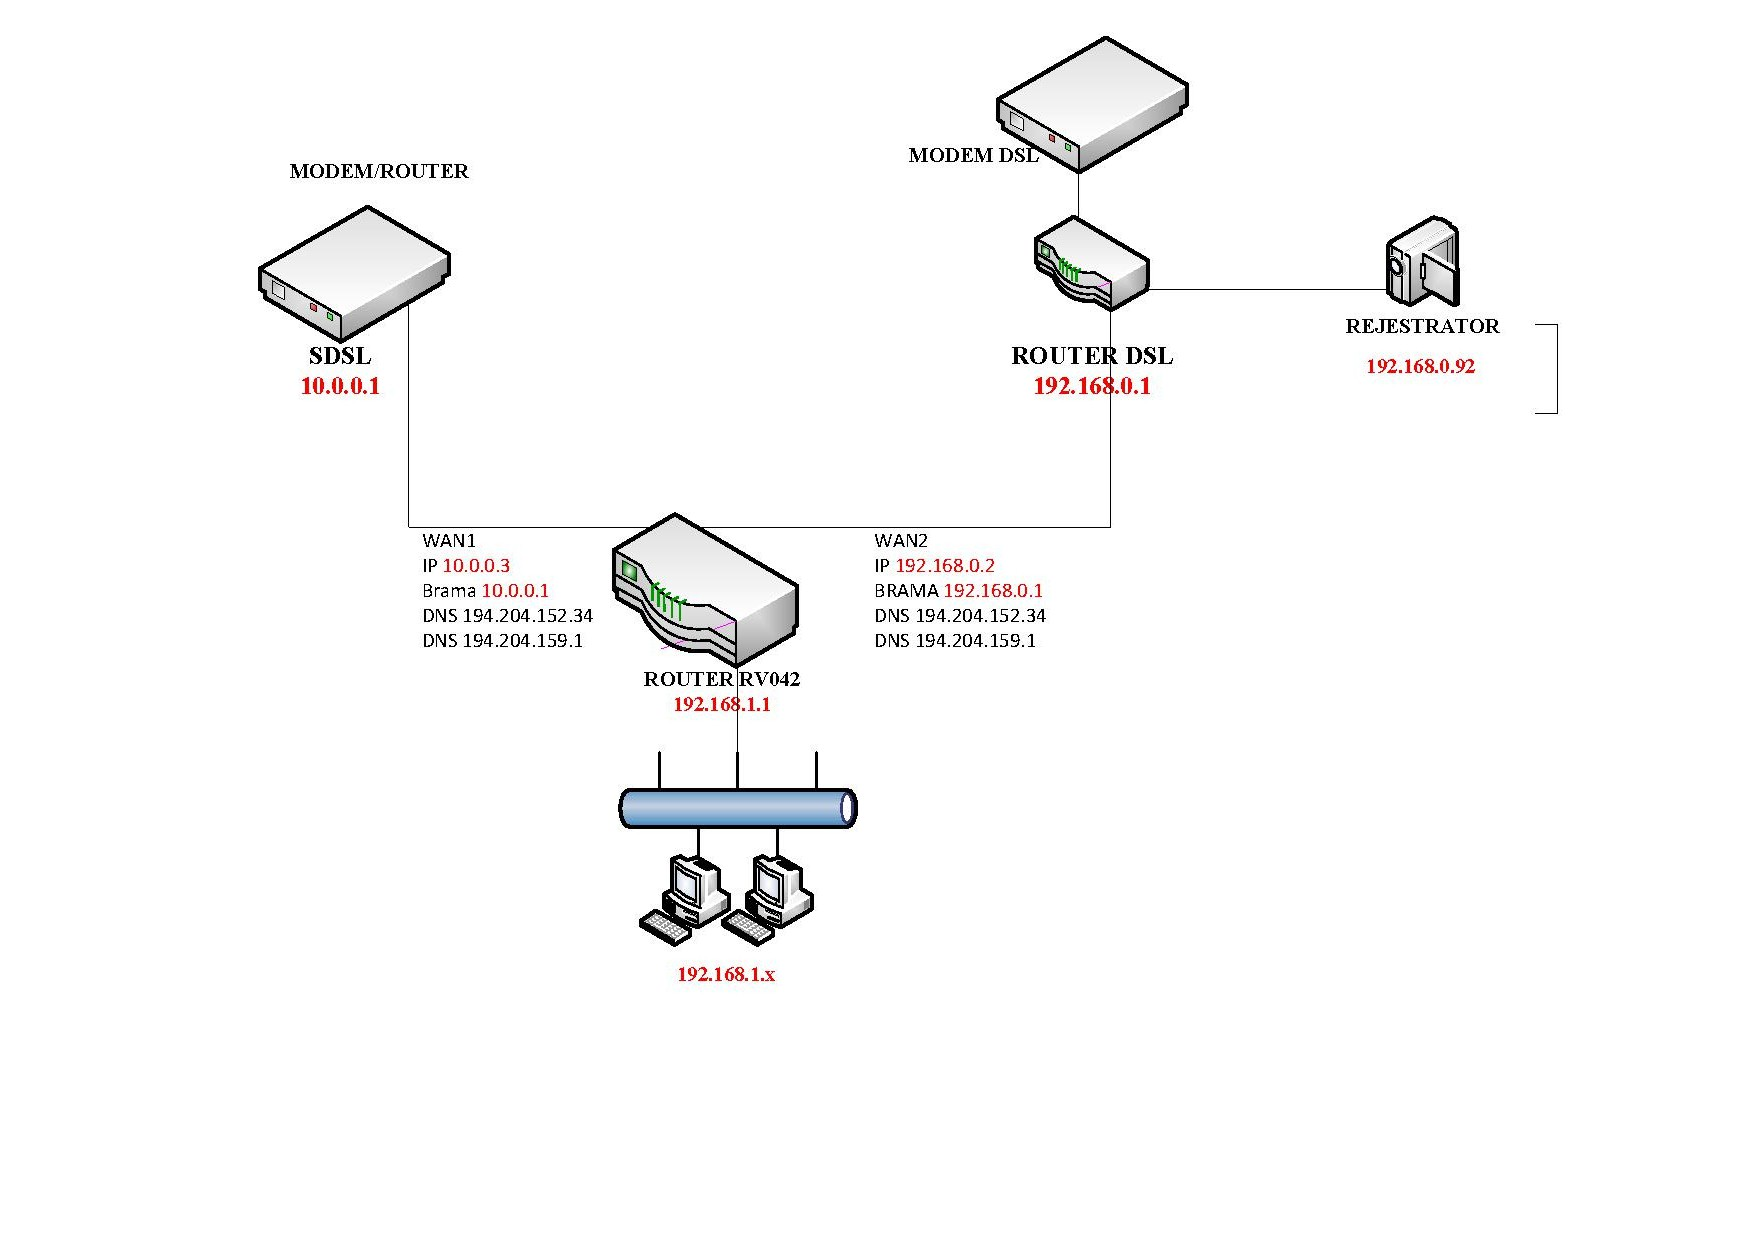 how to use a dual wan router